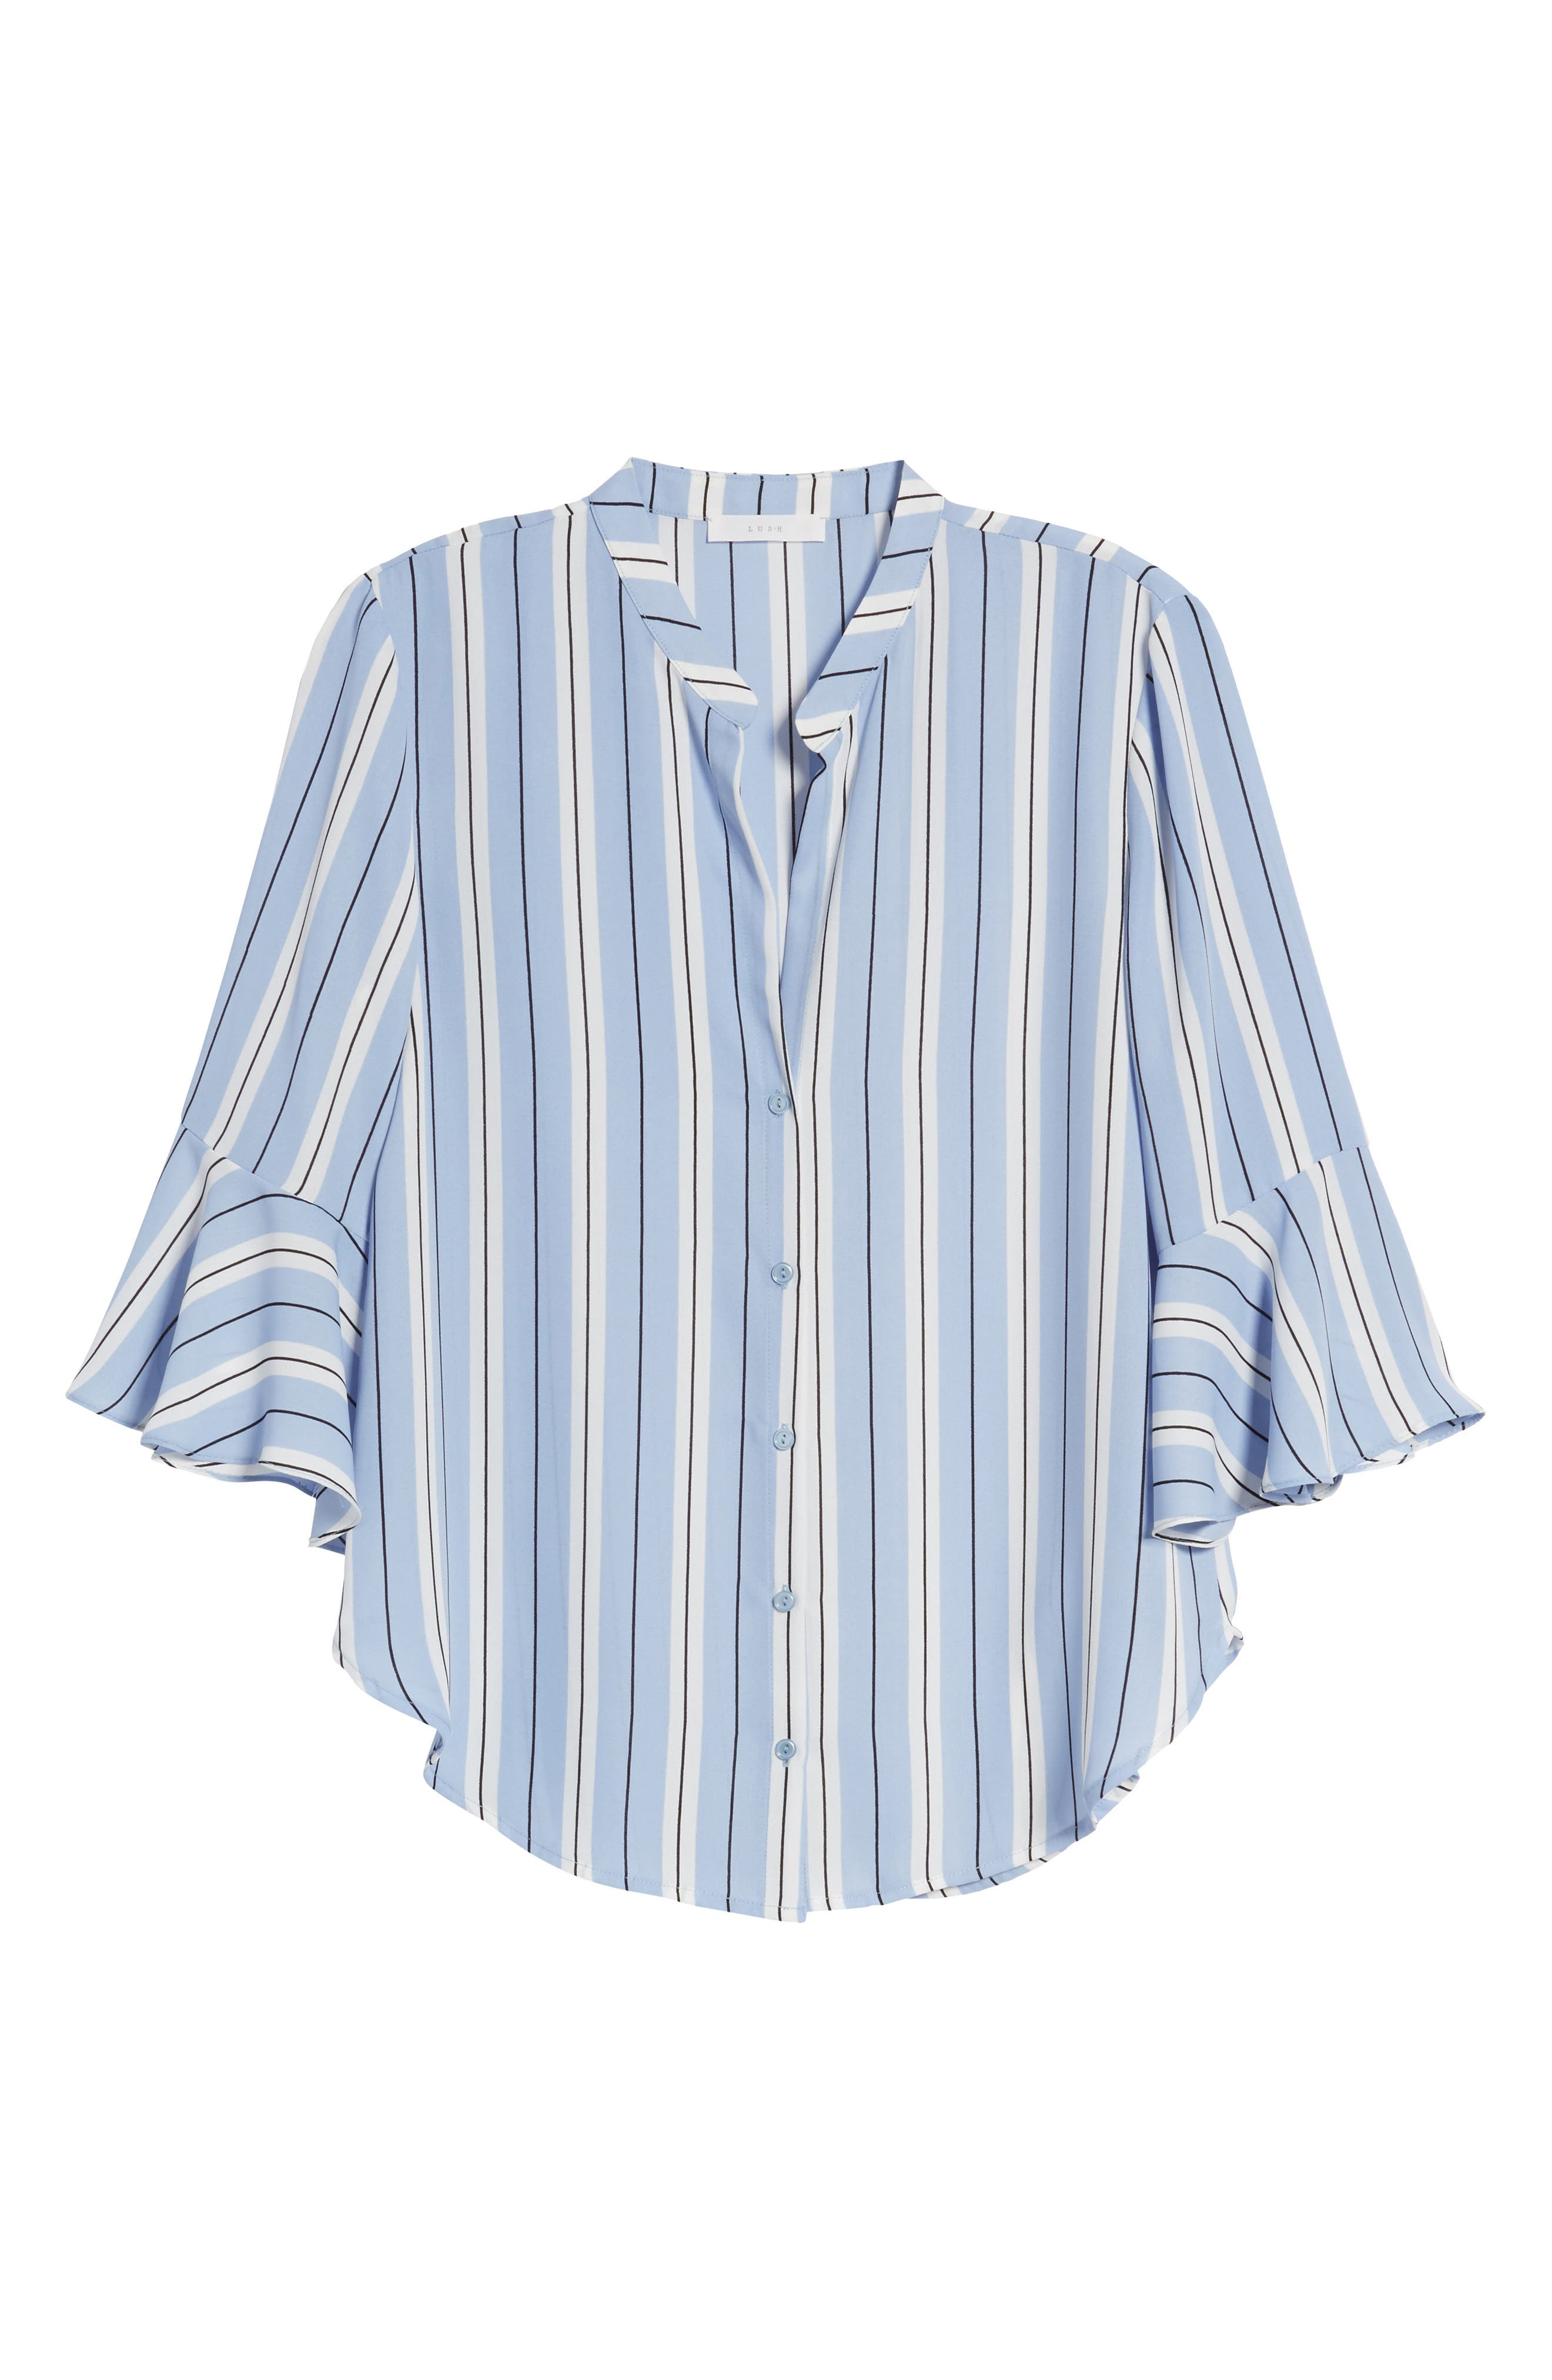 Print Bell Sleeve Shirt,                             Alternate thumbnail 7, color,                             Blue Black Stripes